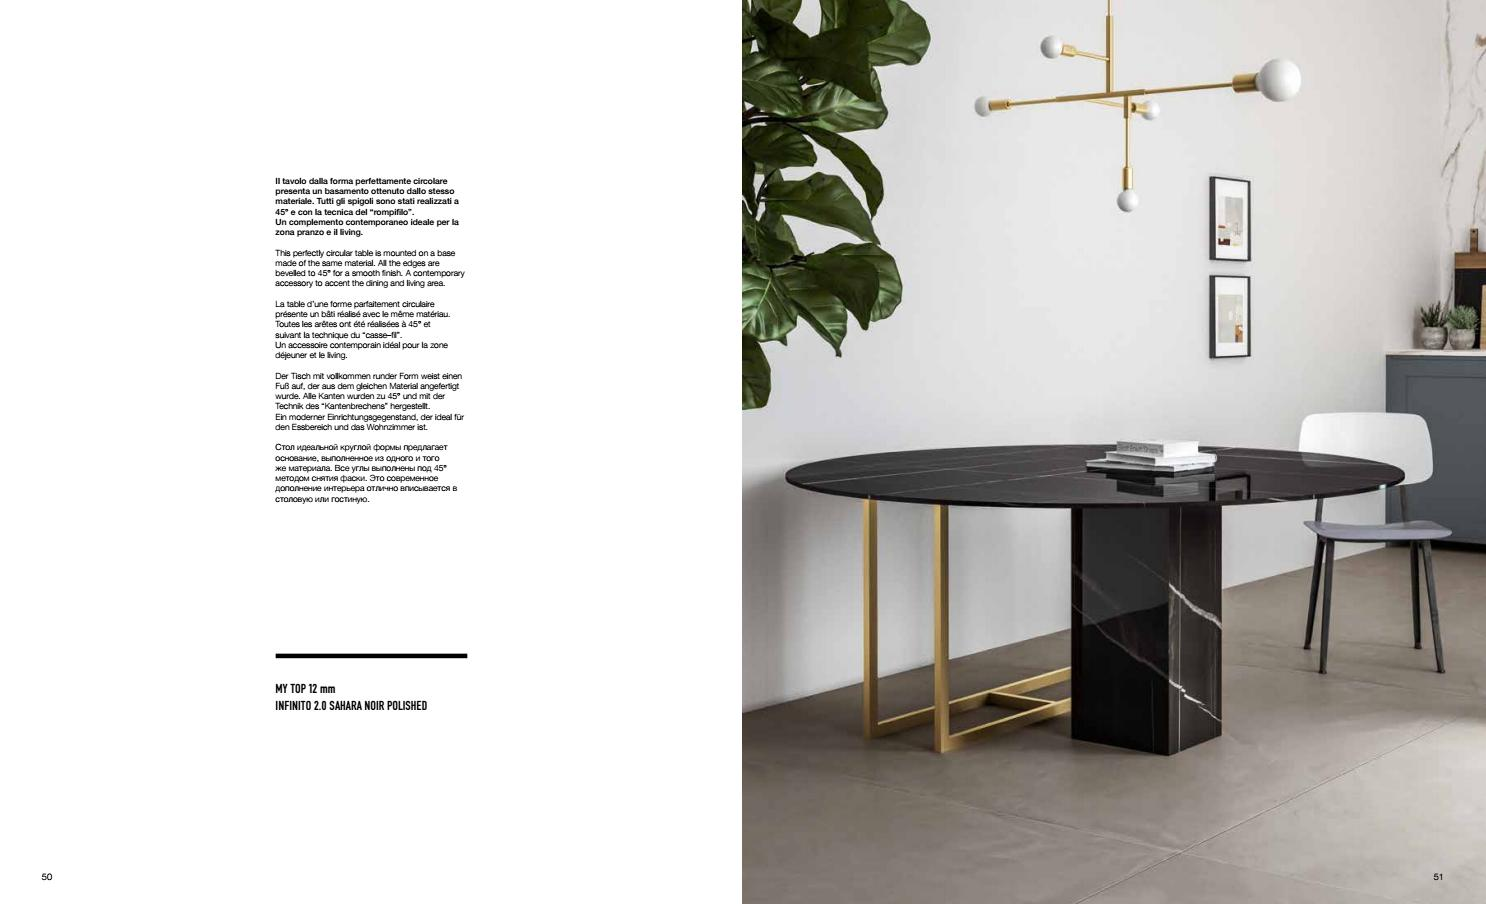 My Top Fondovalle By Ibagno Dimopoulos Issuu